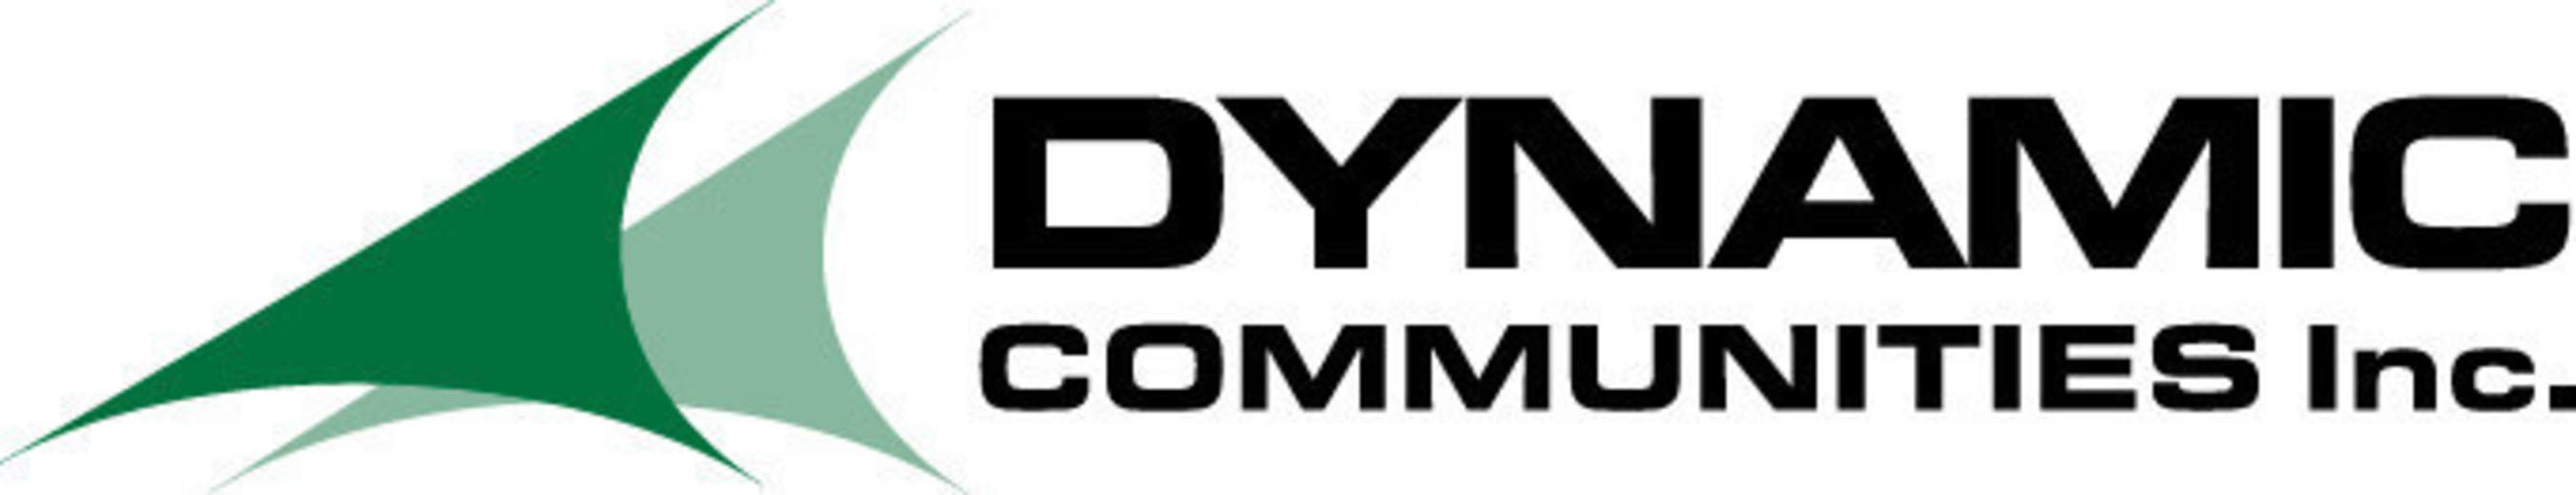 Dynamic Communities, Inc. Announces Amplify hosted by GPUG